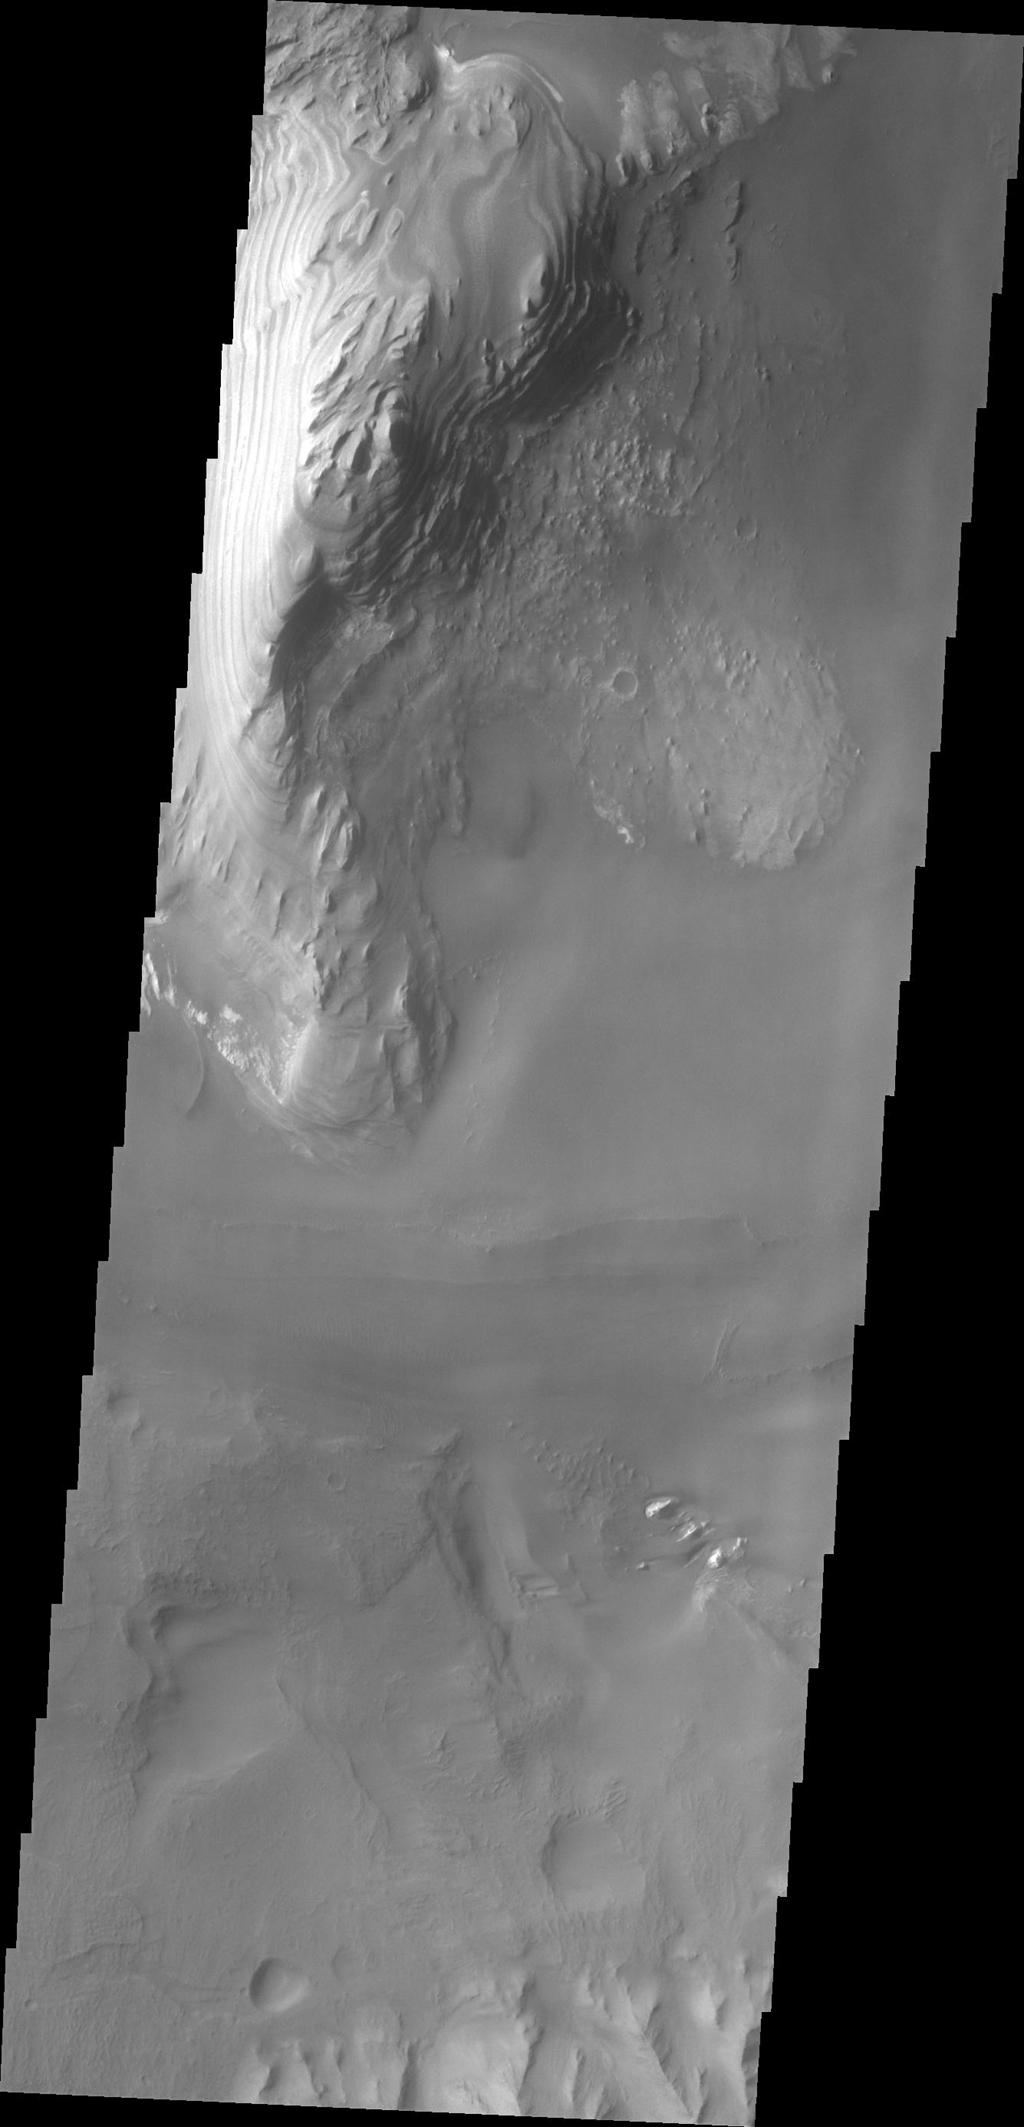 Layering is visible in these deposits on the floor of Juventae Chasma in this image captured by NASA's 2001 Mars Odyssey.